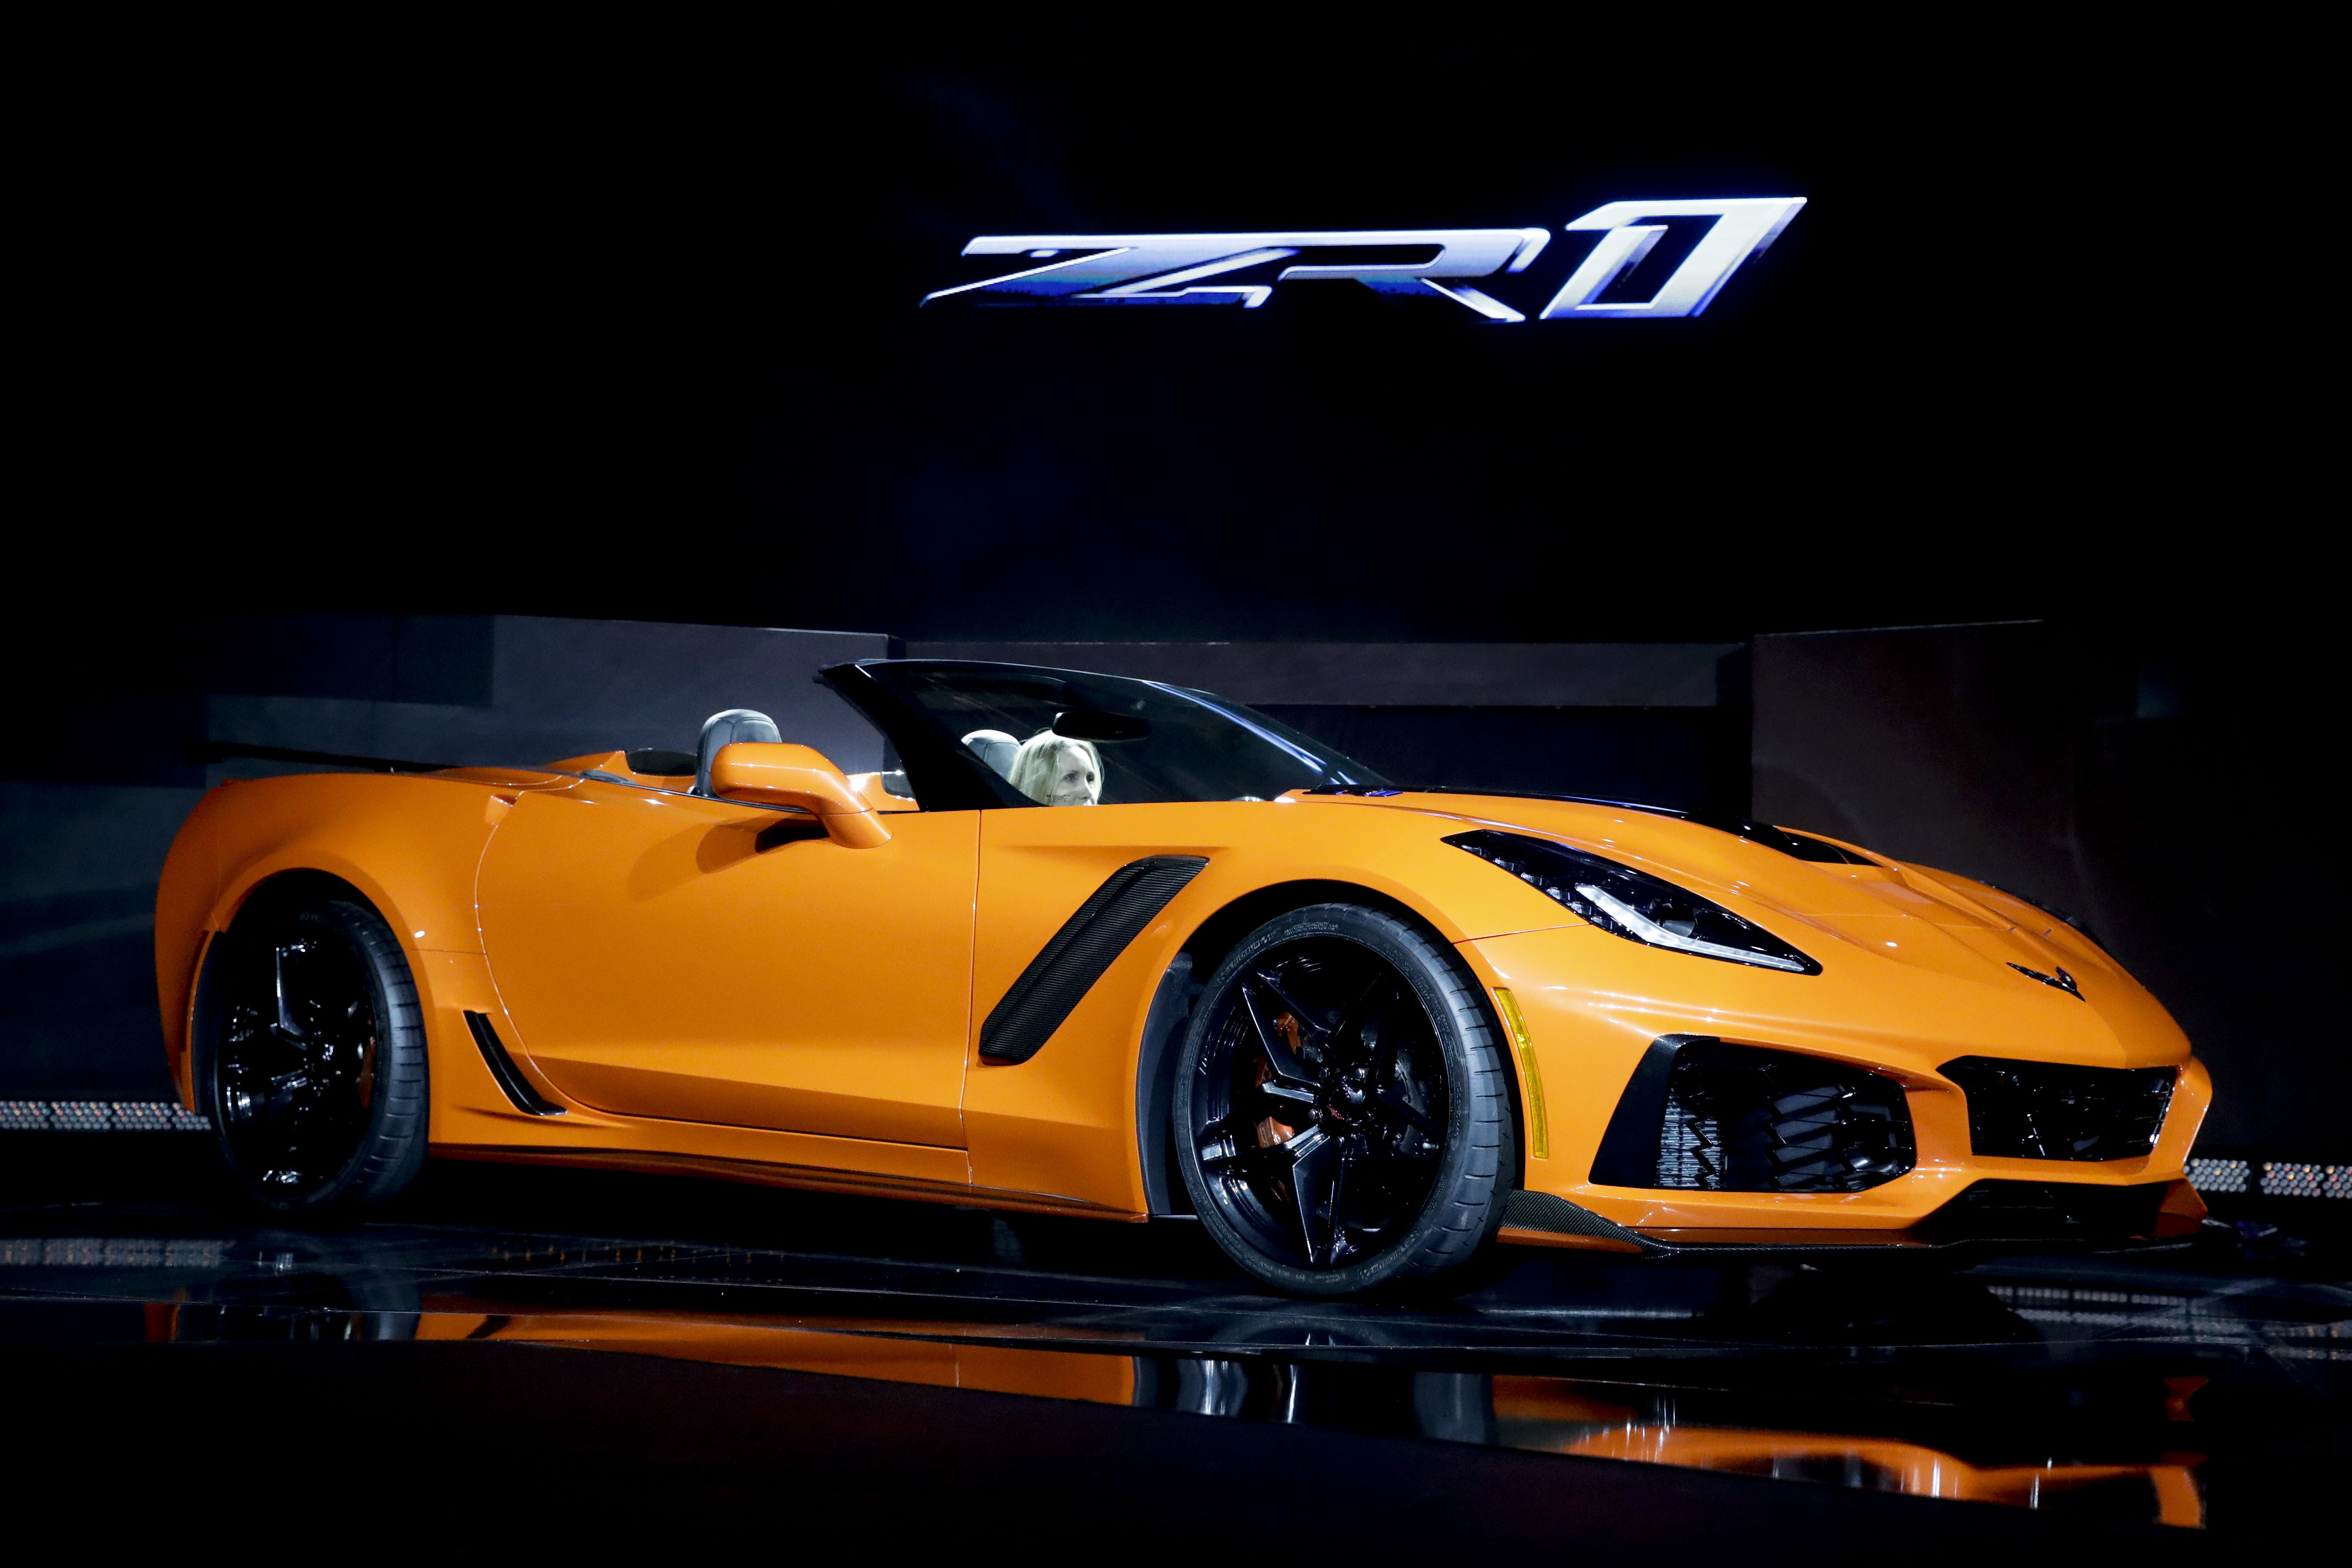 The 2019 Chevrolet Corvette ZR1 convertible is revealed during the AutoMobility LA auto show Tuesday, Nov. 28, 2017, in Los Angeles. (AP Photo/Chris Carlson)